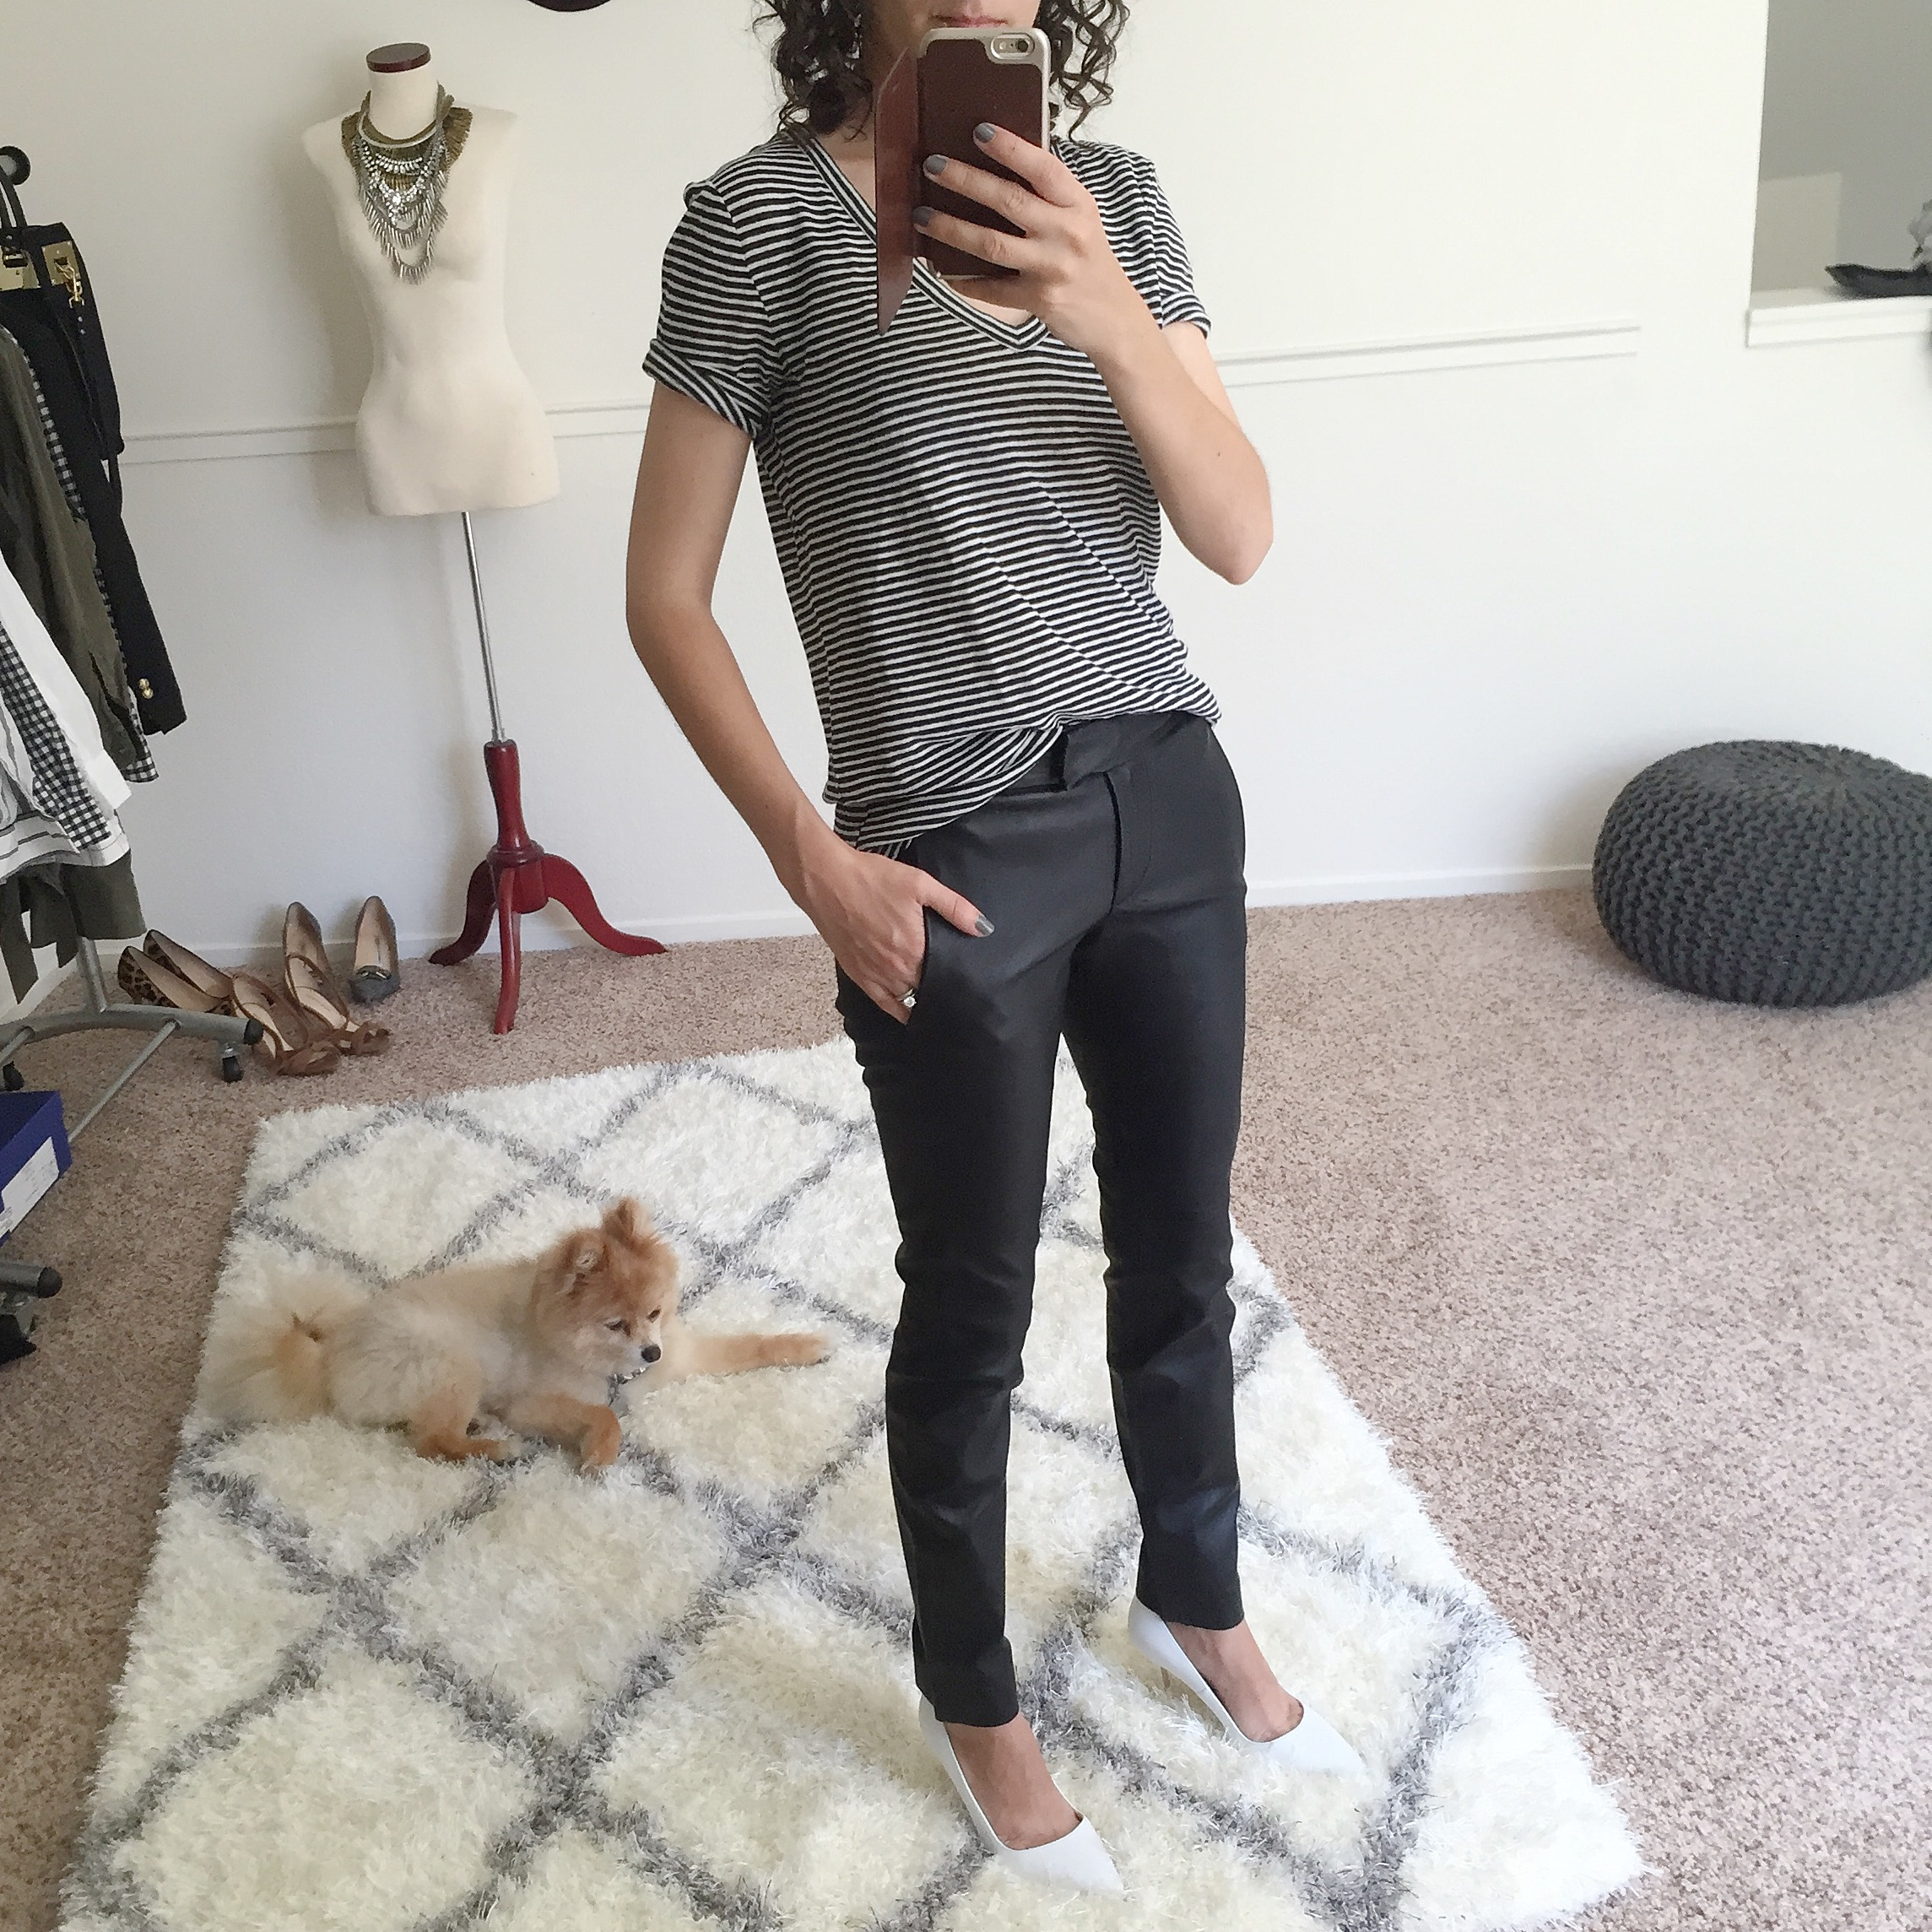 Fit Review Friday – J.Crew Pants in Size Petite 000